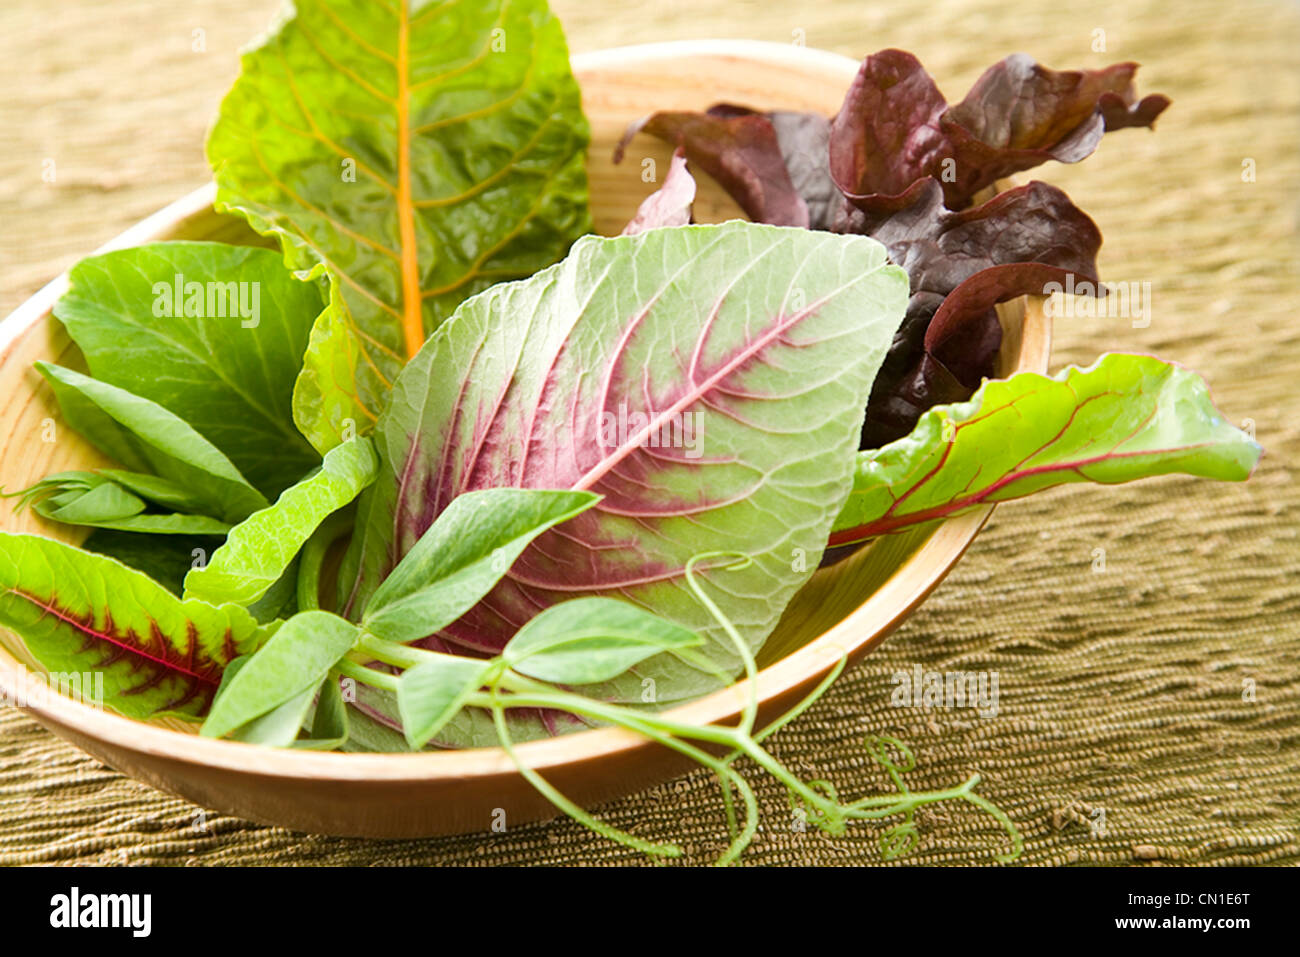 Mixed Greens in Bowl - Stock Image